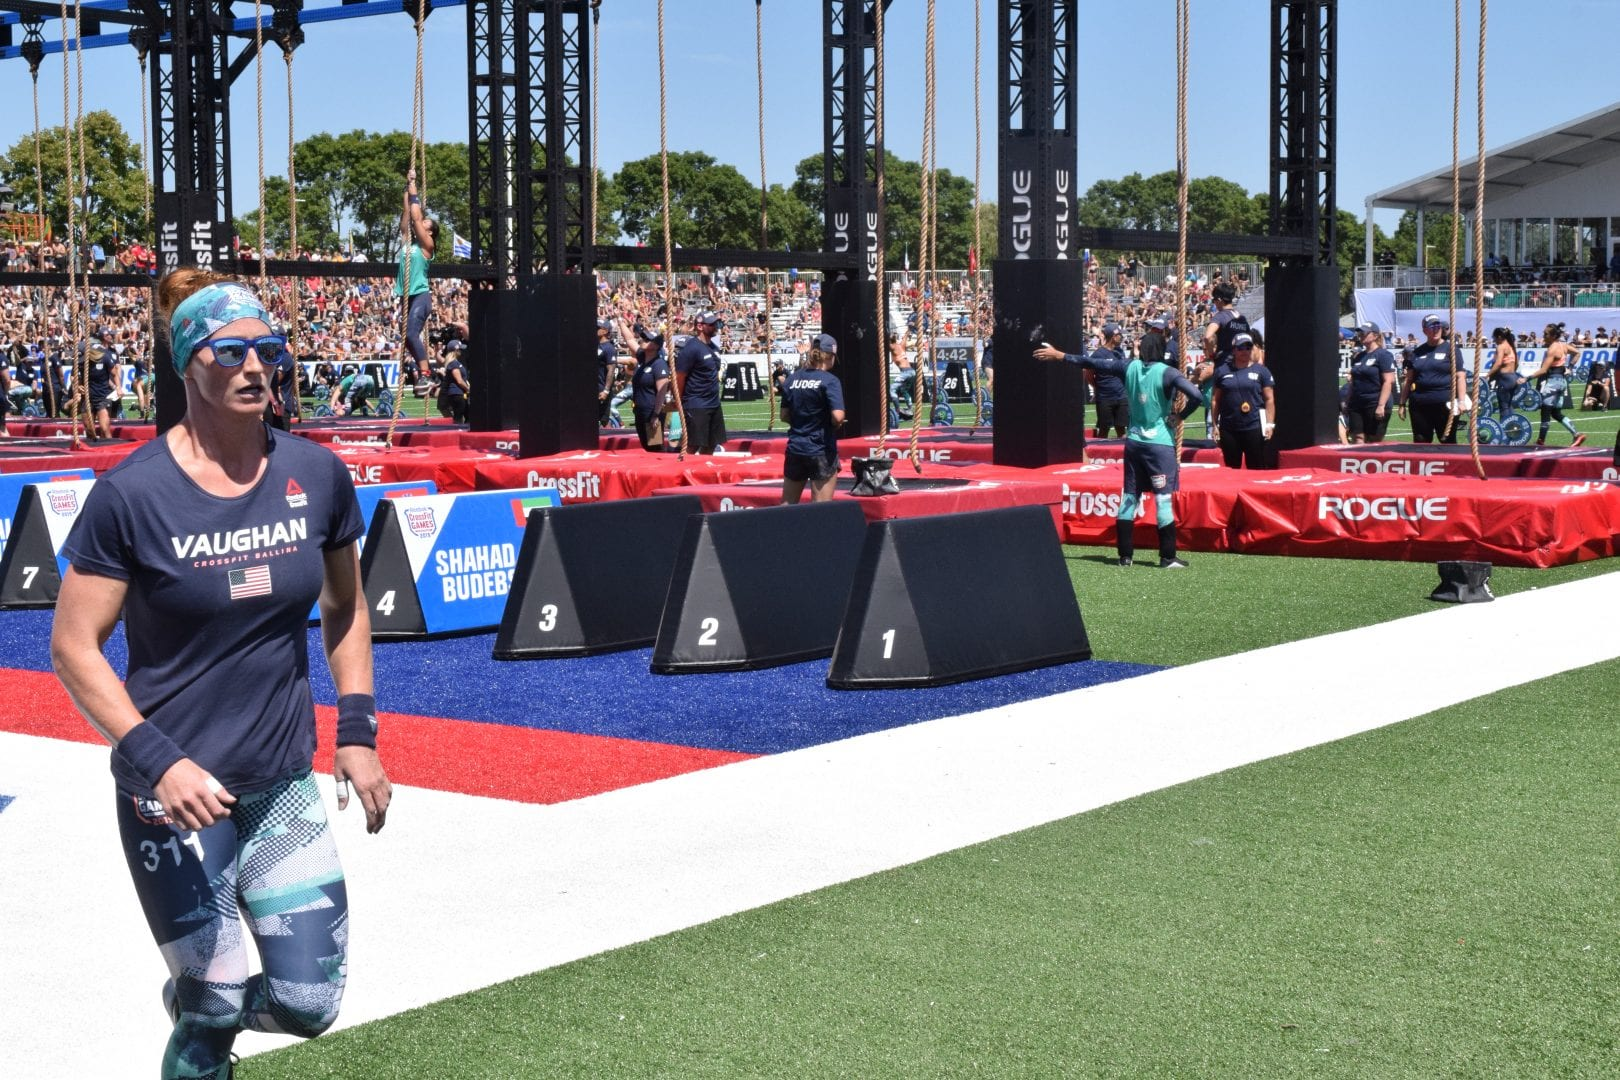 Lindsay Vaughan starts a lap between rounds of legless rope climbs at the 2019 CrossFit Games